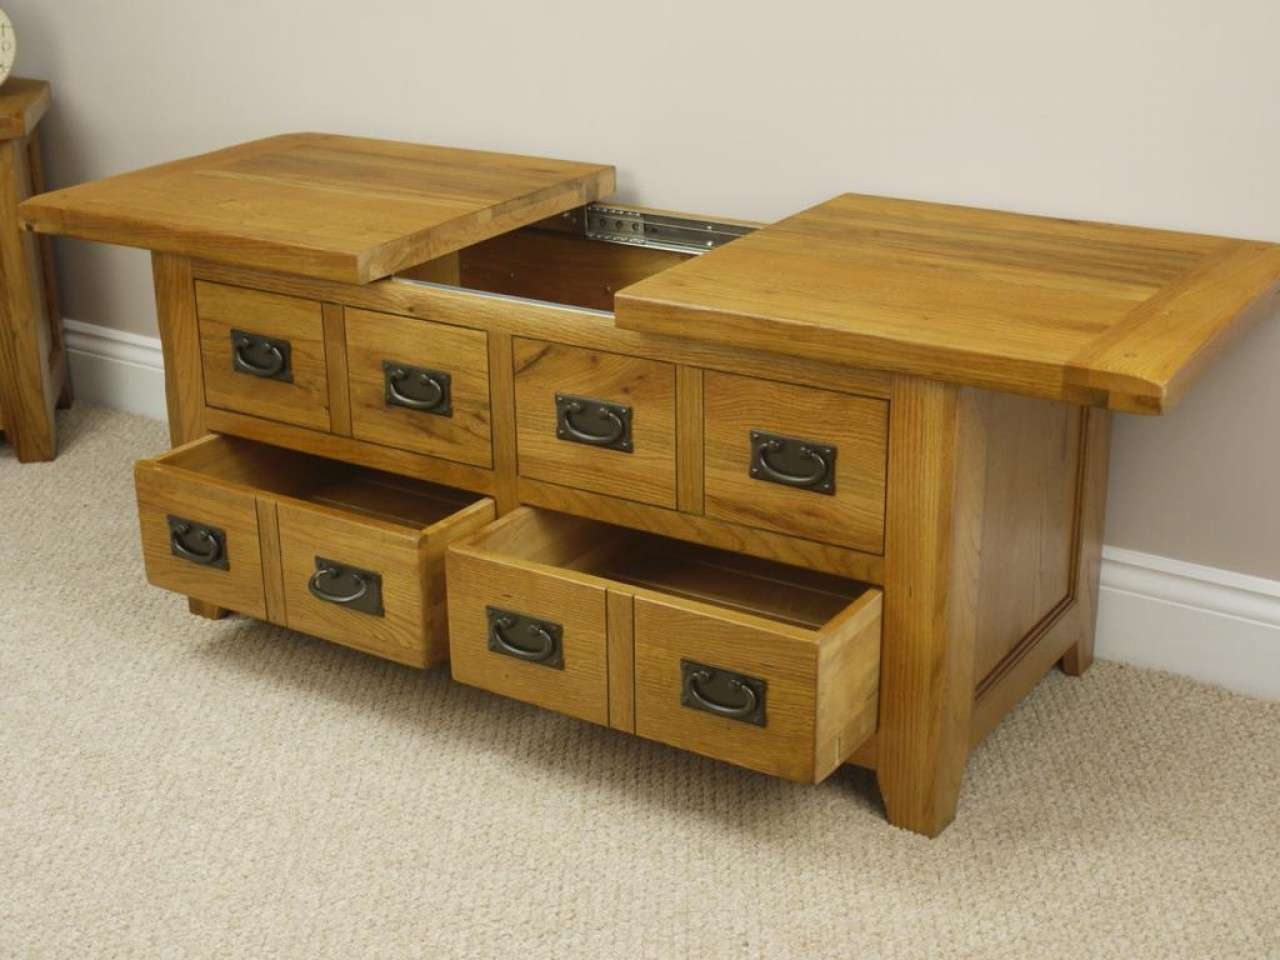 Favorite Rustic Oak Coffee Table With Drawers Intended For Rustic Storage Coffee Table Style — Home Design Ideas (View 9 of 20)